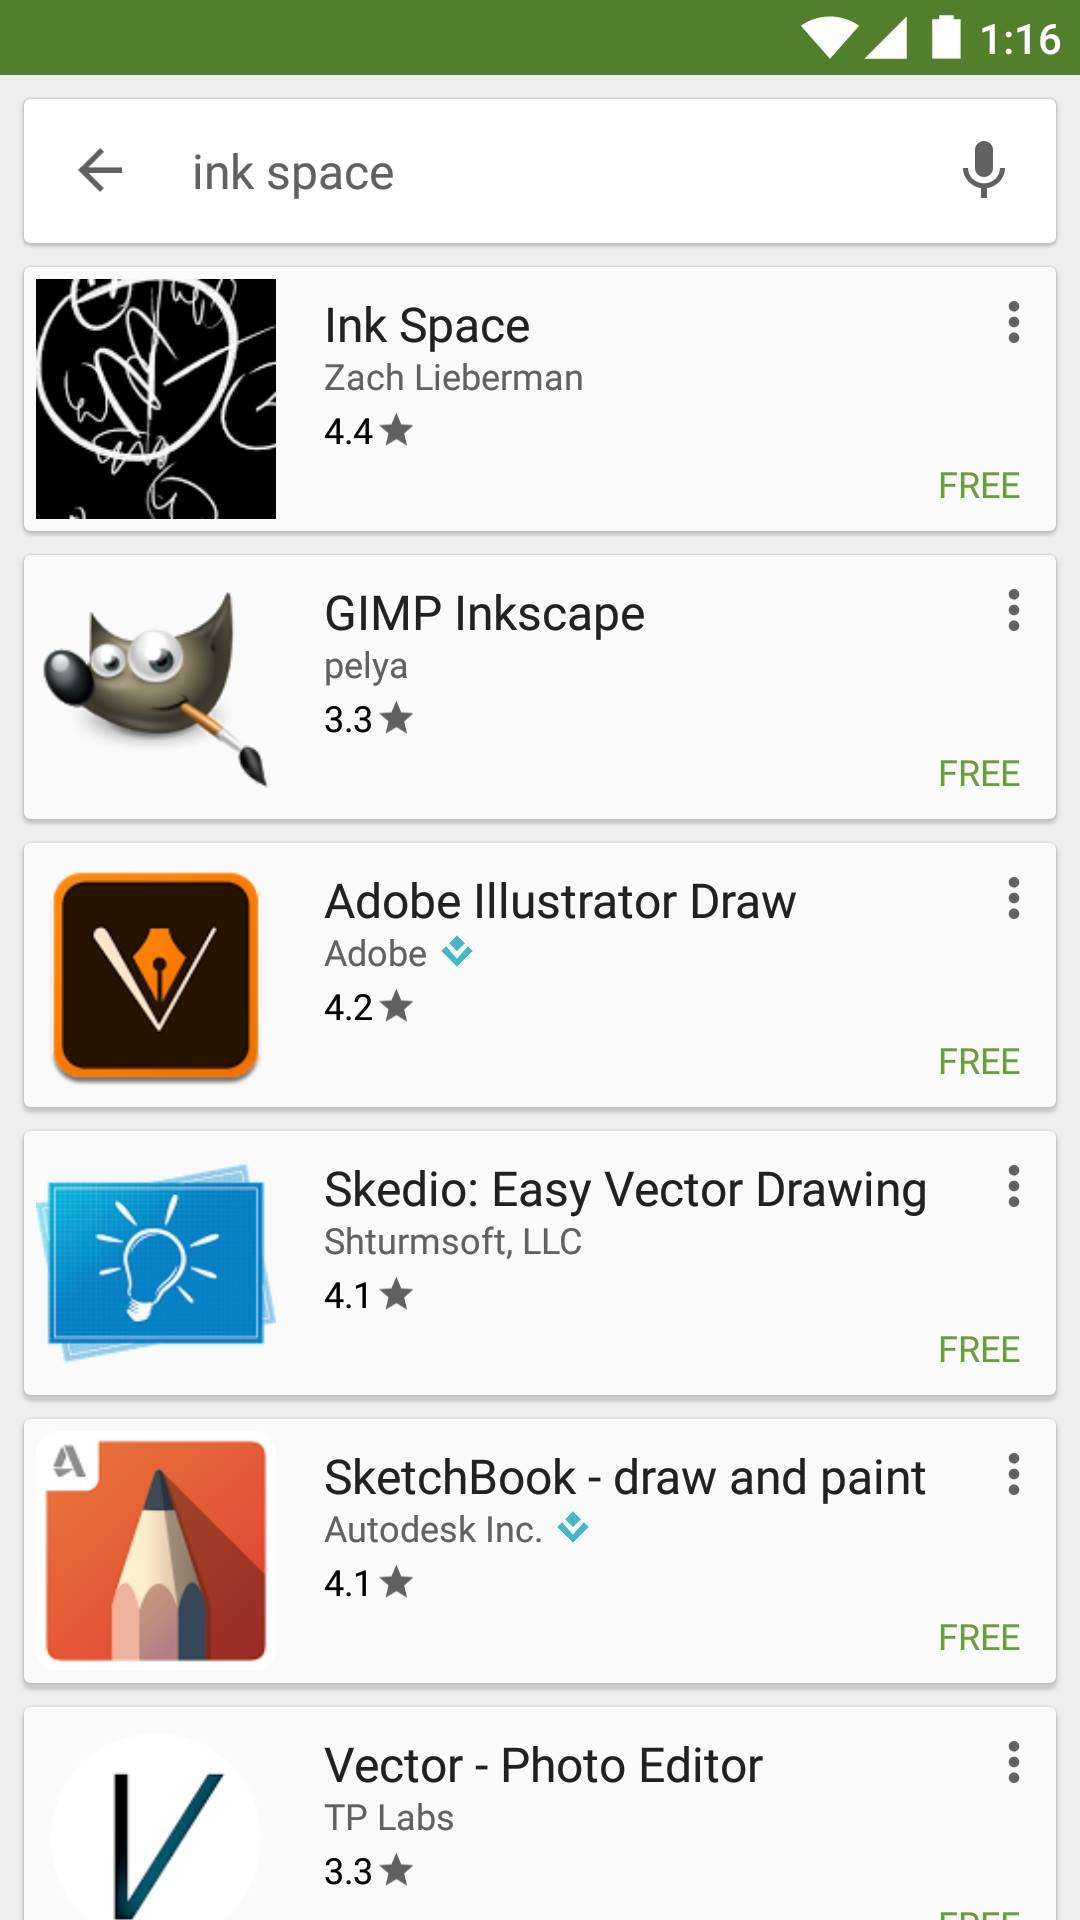 Draw In 3d On Mobile Using Ink Space App